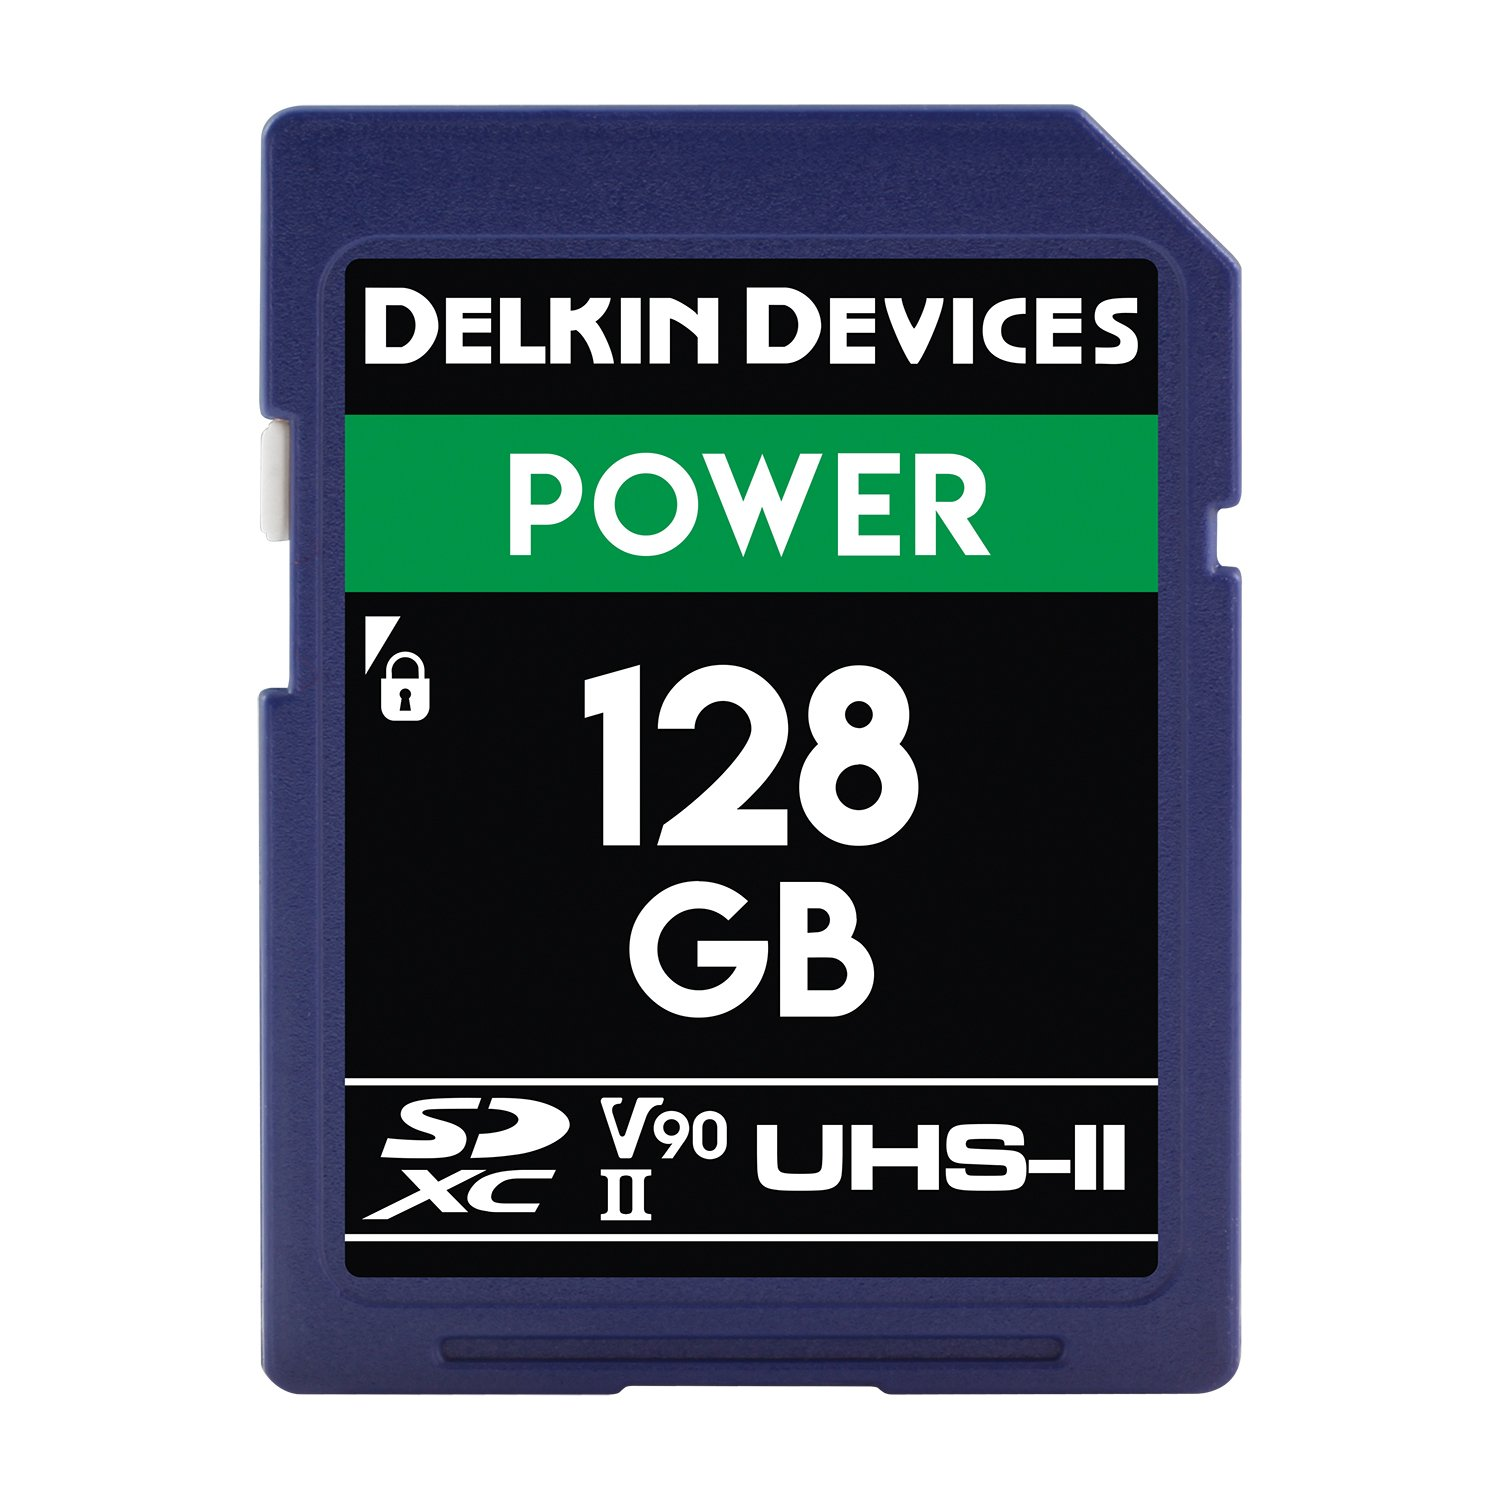 Delkin DDSDG2000128 Devices 128GB Power SDXC UHS-II (U3/V90) Memory Card by Delkin